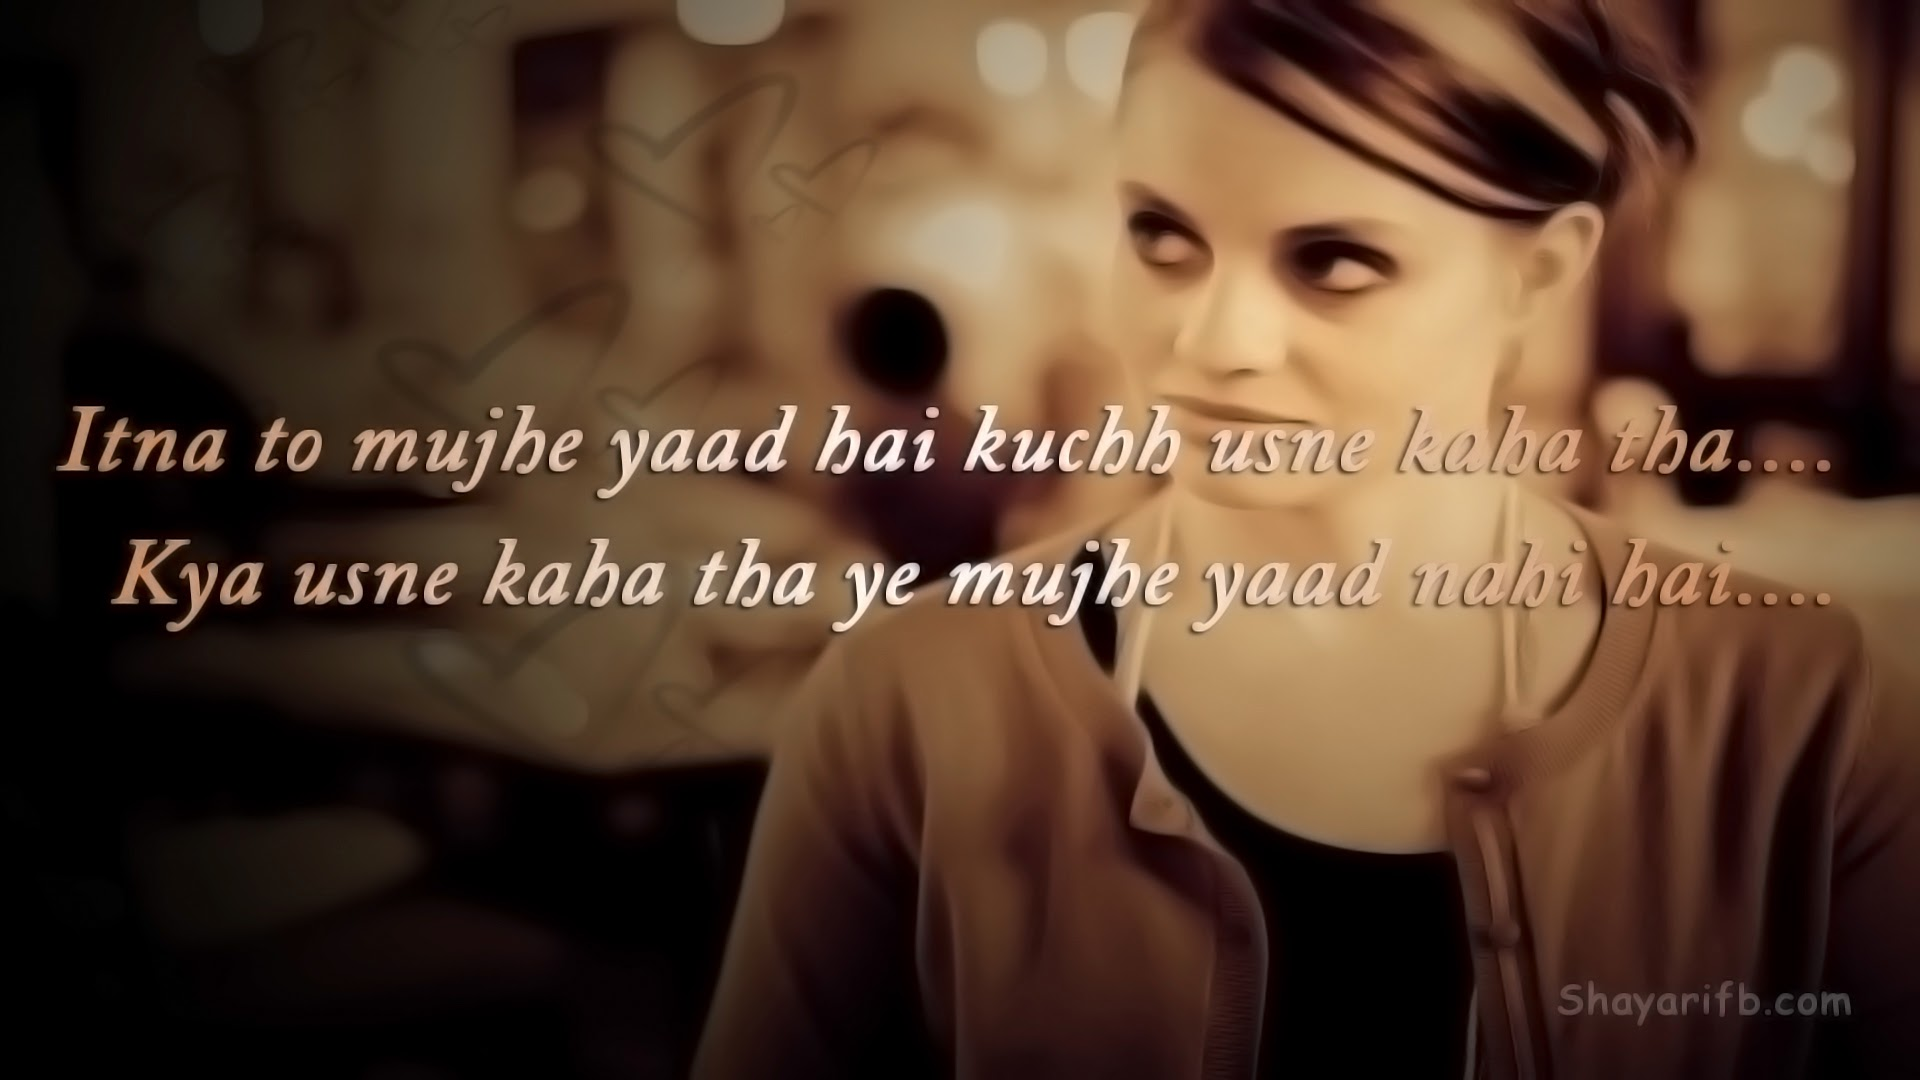 Wallpaper Love Sayri Image : Beautiful Hindi Shayari for True Love Wallpapers